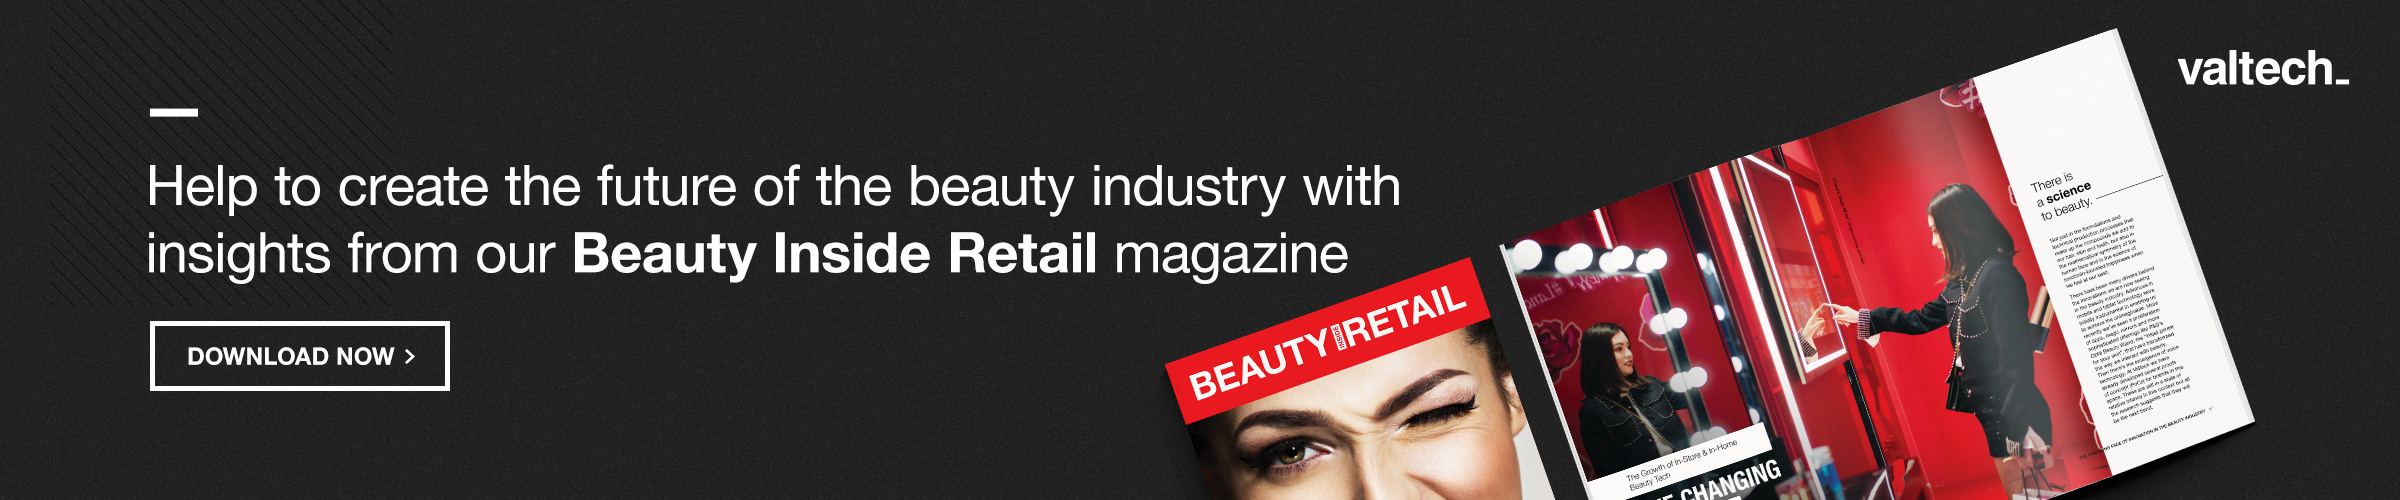 Beauty-Inside-Retail-Blog whitepaper